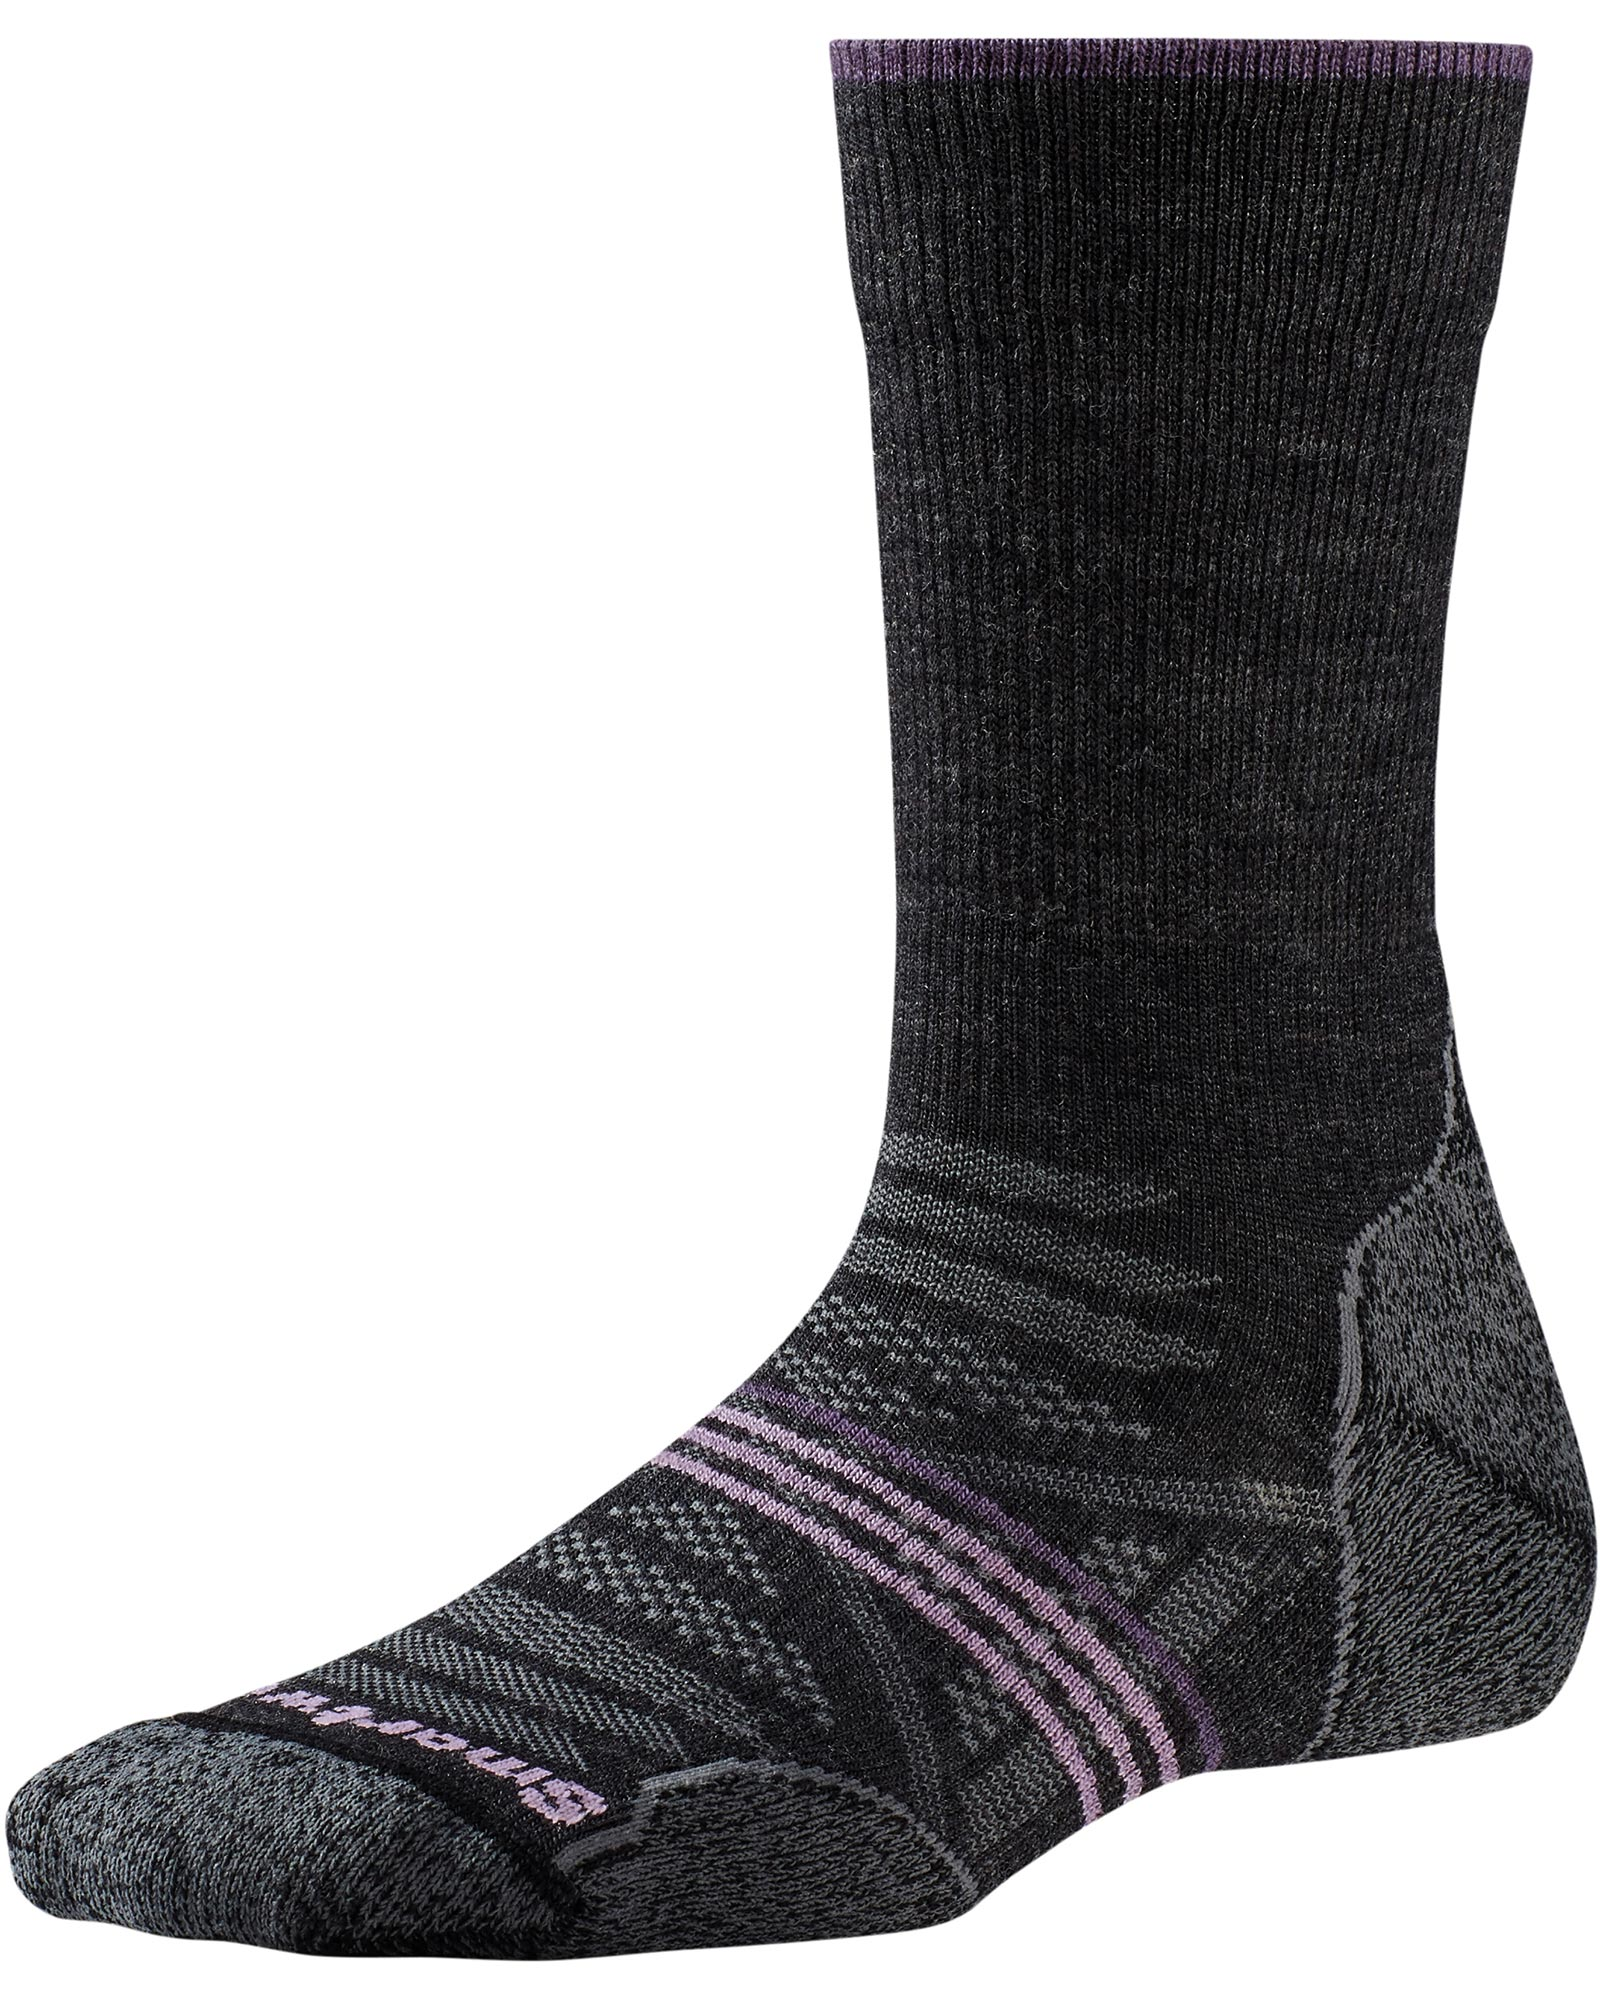 Smartwool Merino PhD Women's Light Crew Socks 0